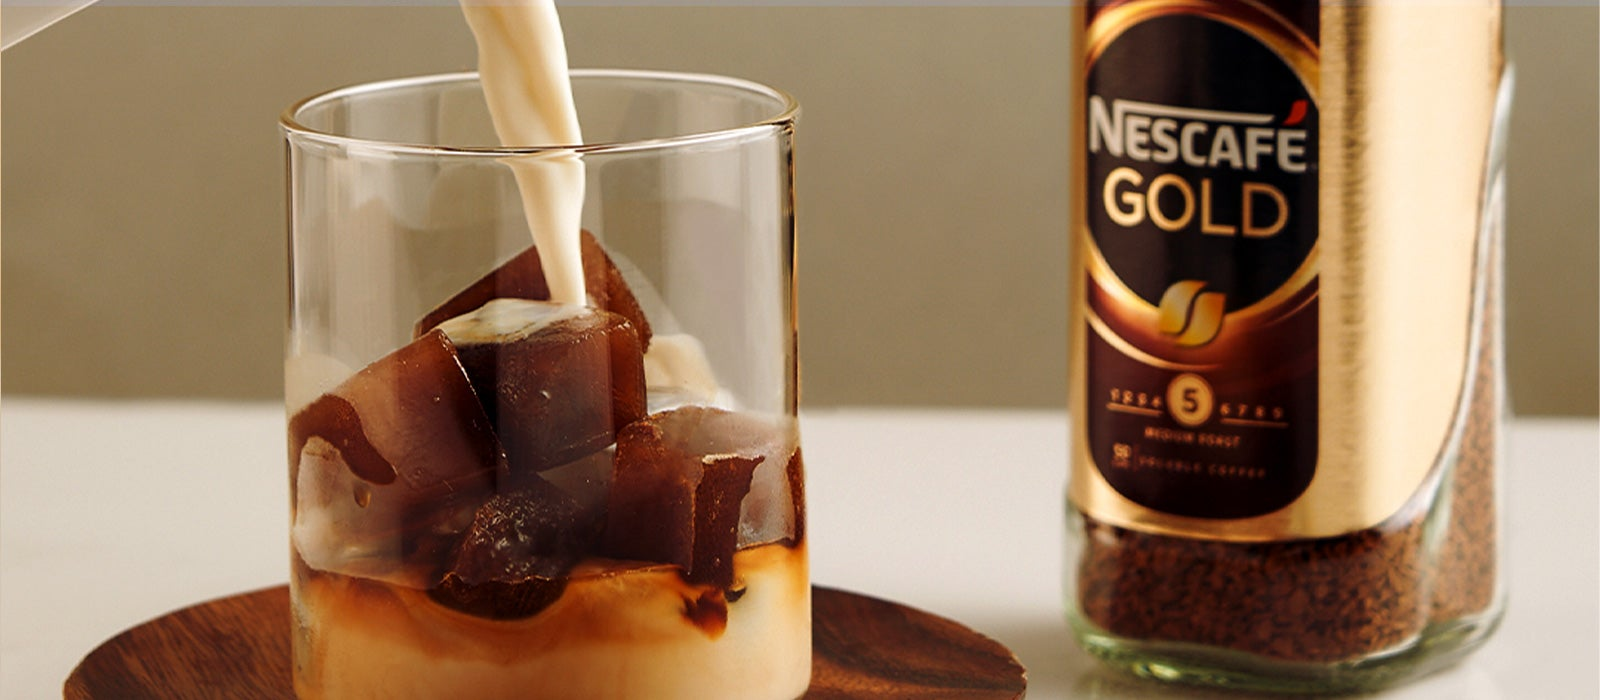 nescafe-gold-coffee-iced-cubes-recipe-banner